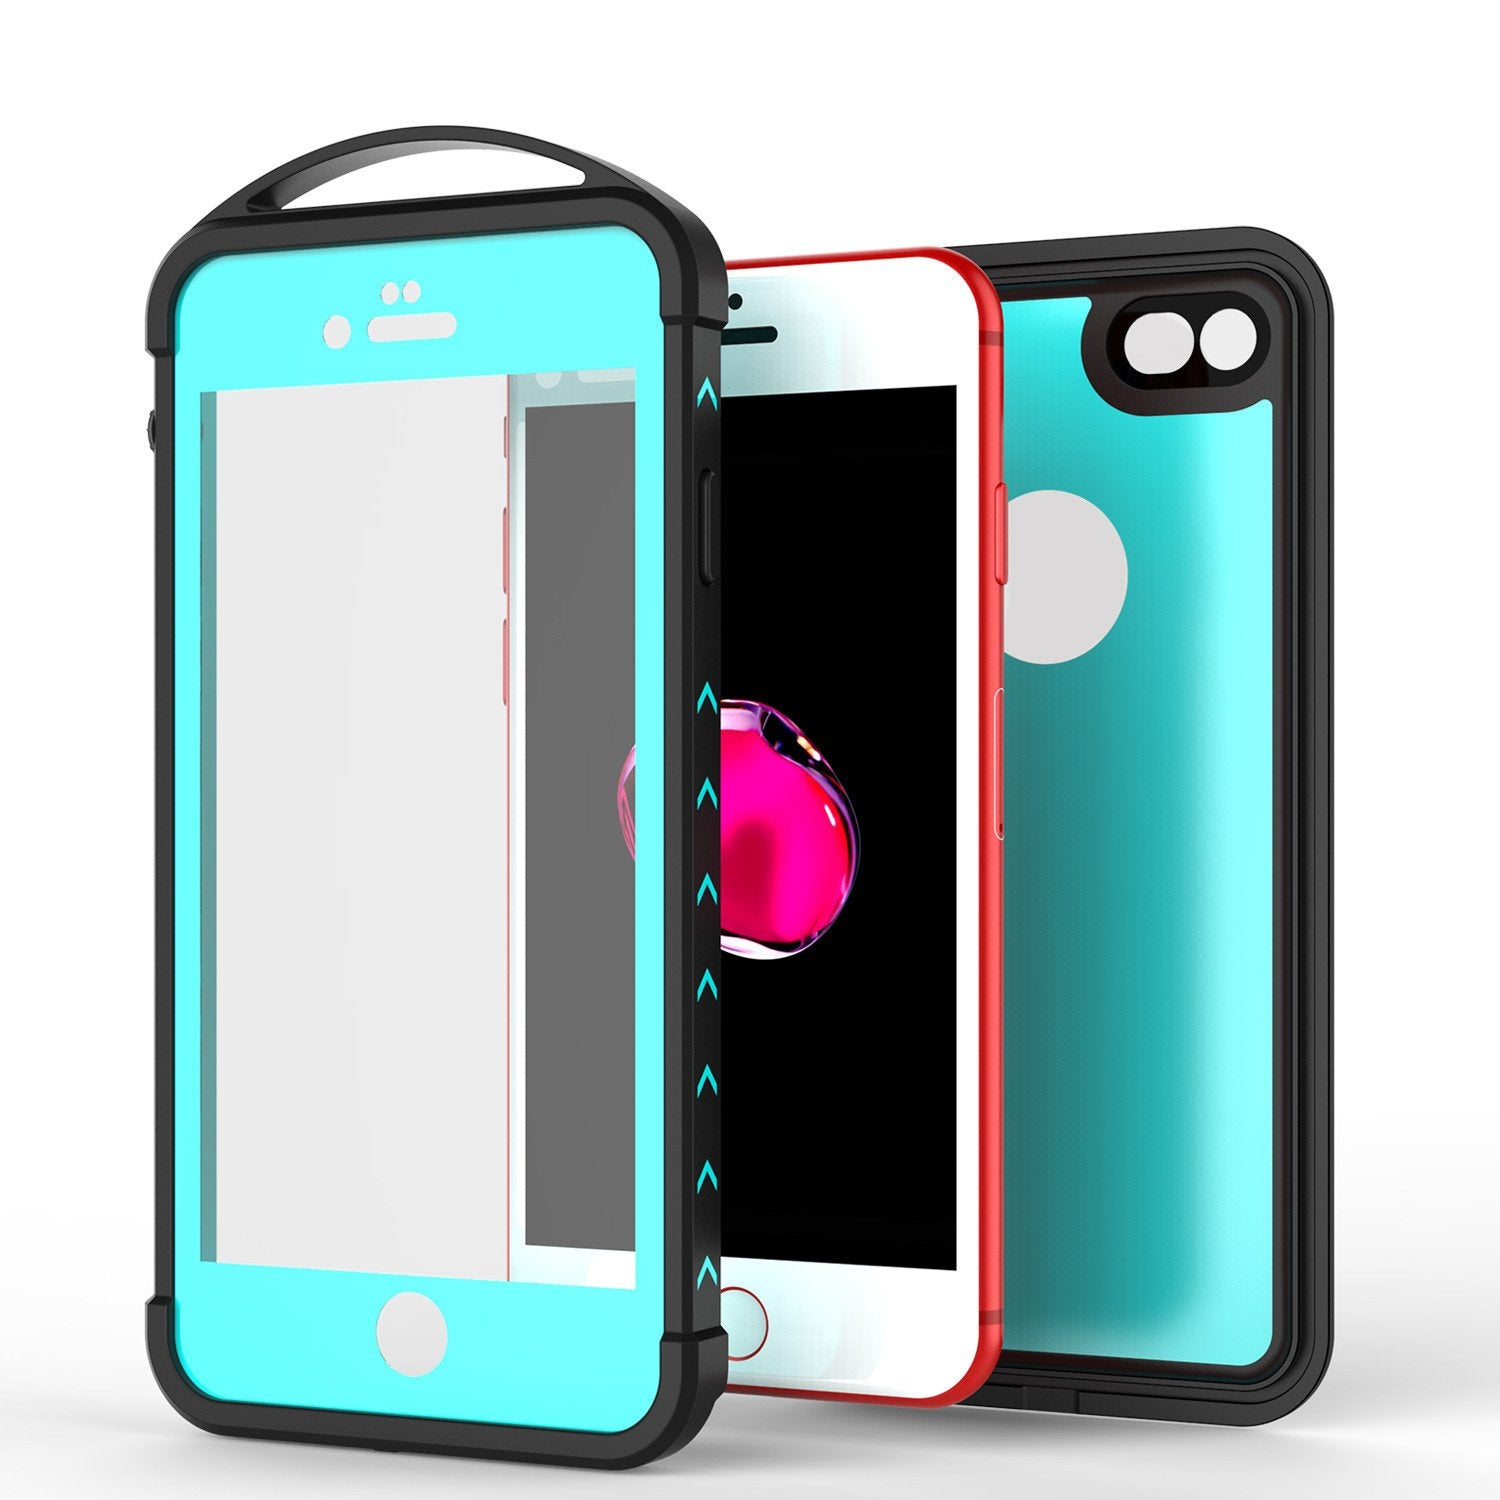 iPhone 8 Waterproof Case, Punkcase ALPINE Series, Teal | Heavy Duty Armor Cover